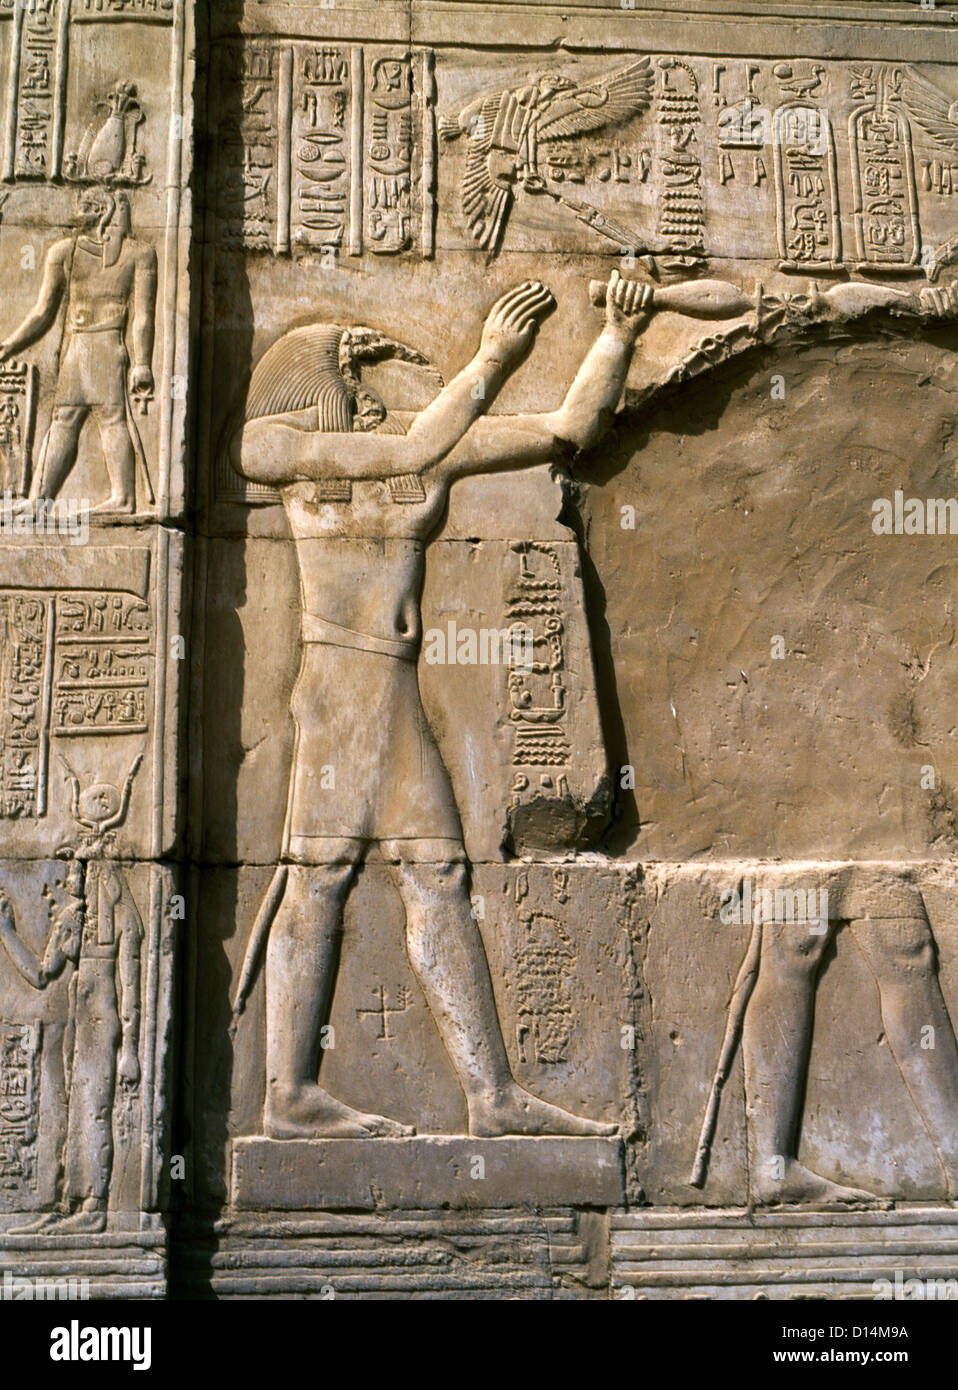 Thoth stock photos images alamy